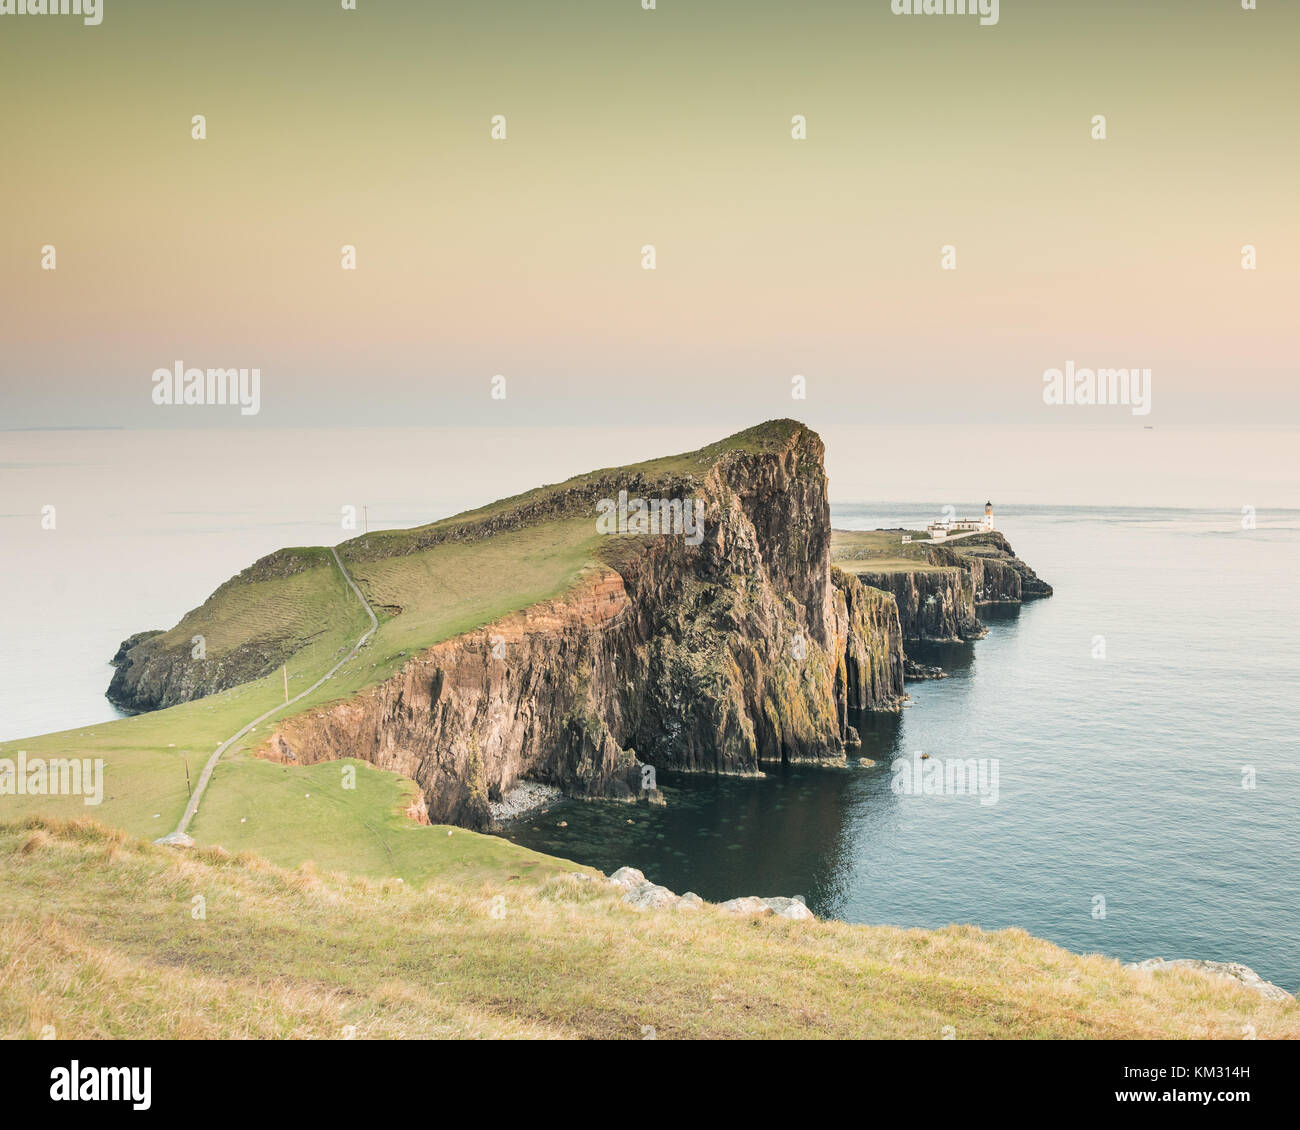 Neist Point - Isle of Skye's most famous lighthouse on a cliff - Stock Image